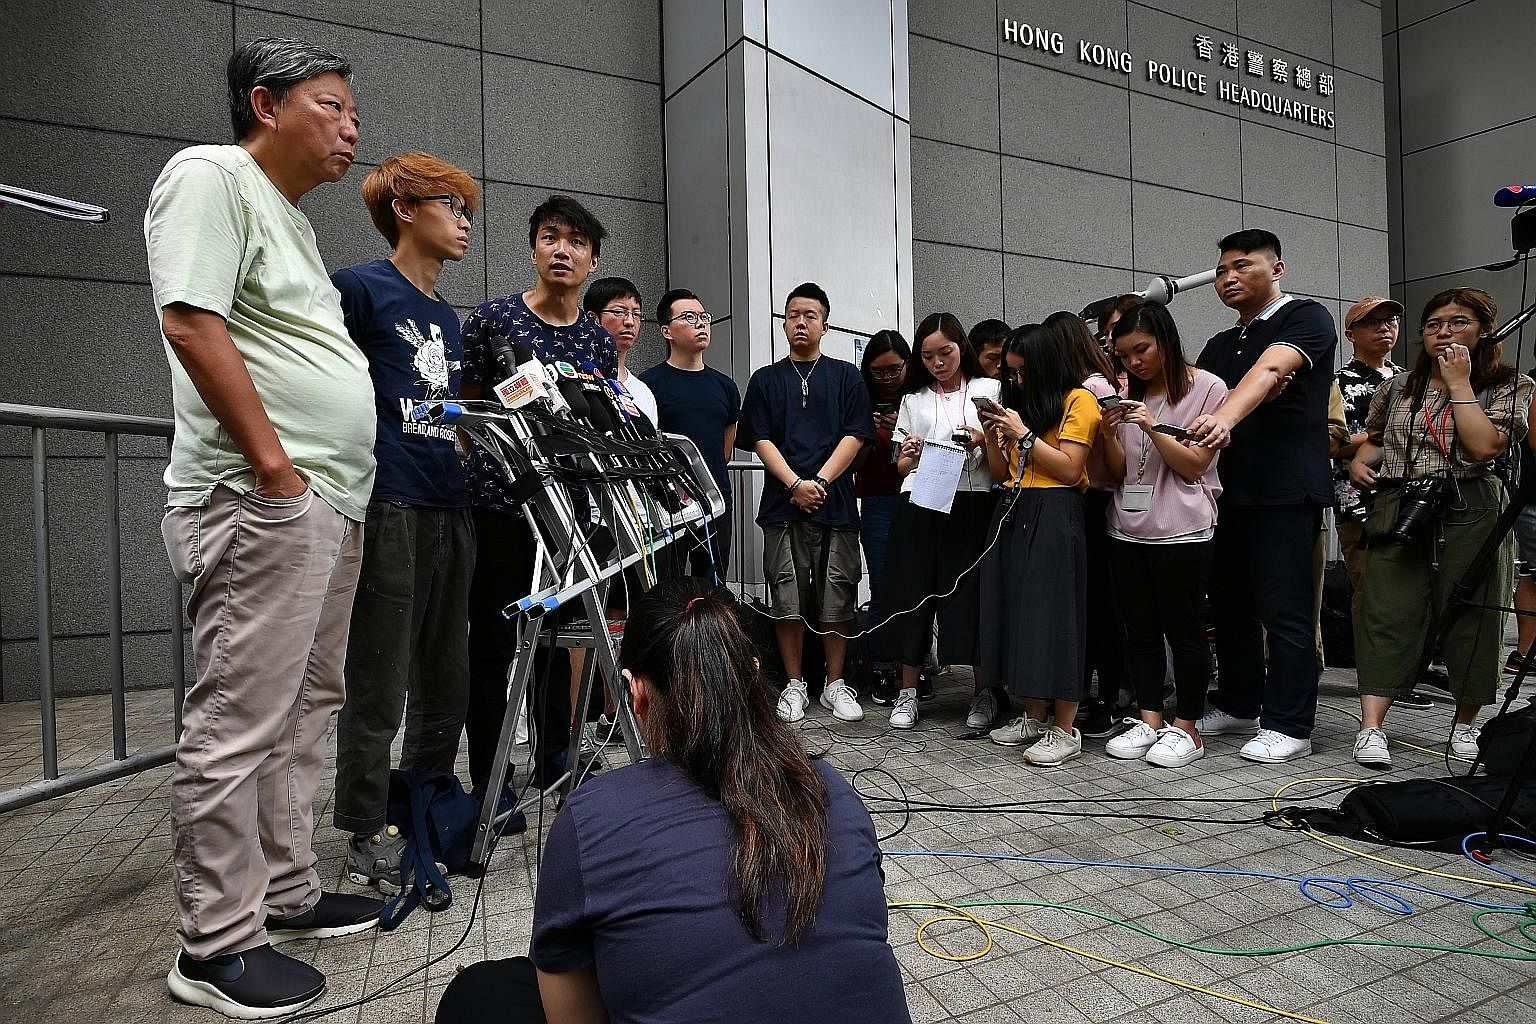 (From left) Hong Kong's Civil Human Rights Front representatives Lee Cheuk-yan, Figo Chan, Jimmy Sham and Wong Yik-mo holding a press conference before making an official complaint against the excessive use of force by the police against protesters o